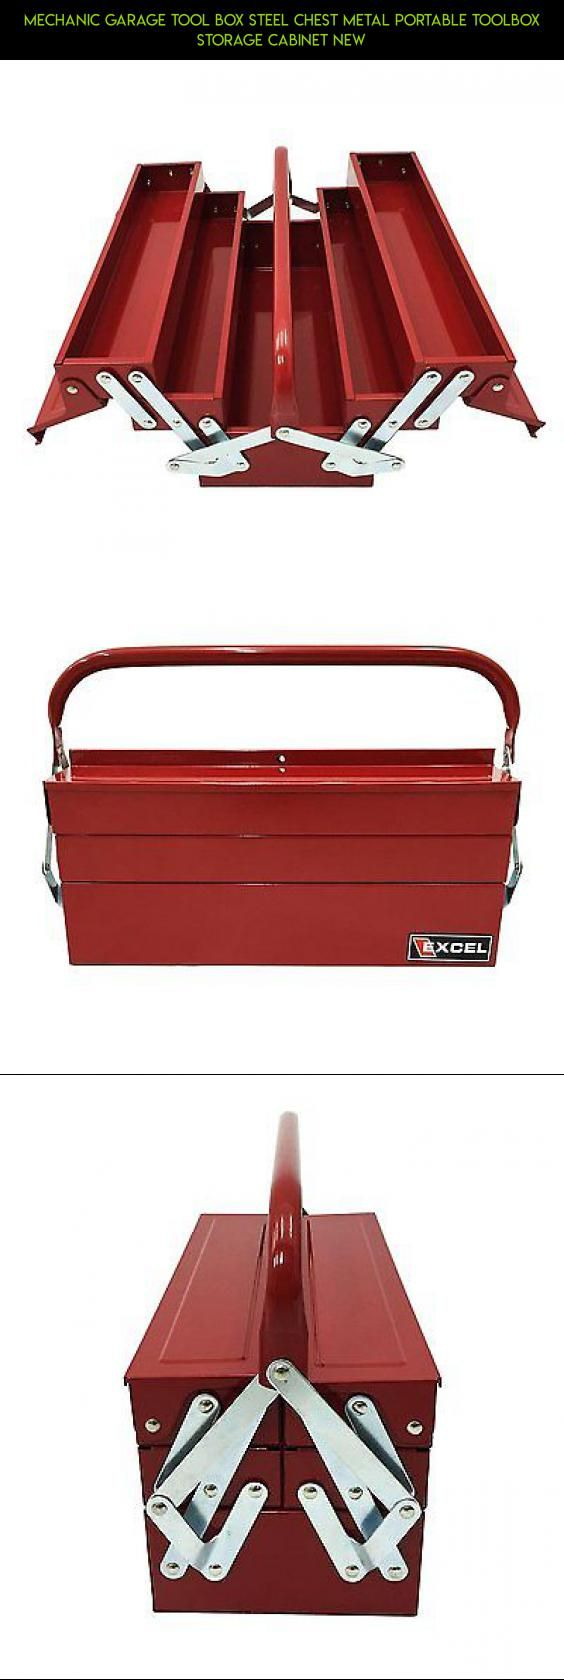 Mechanic Garage Tool Box Steel Chest Metal Portable Toolbox Storage Cabinet New #plans #storage #products #kit #drone #fpv #gadgets #racing #parts #technology #camera #garage #shopping #tech